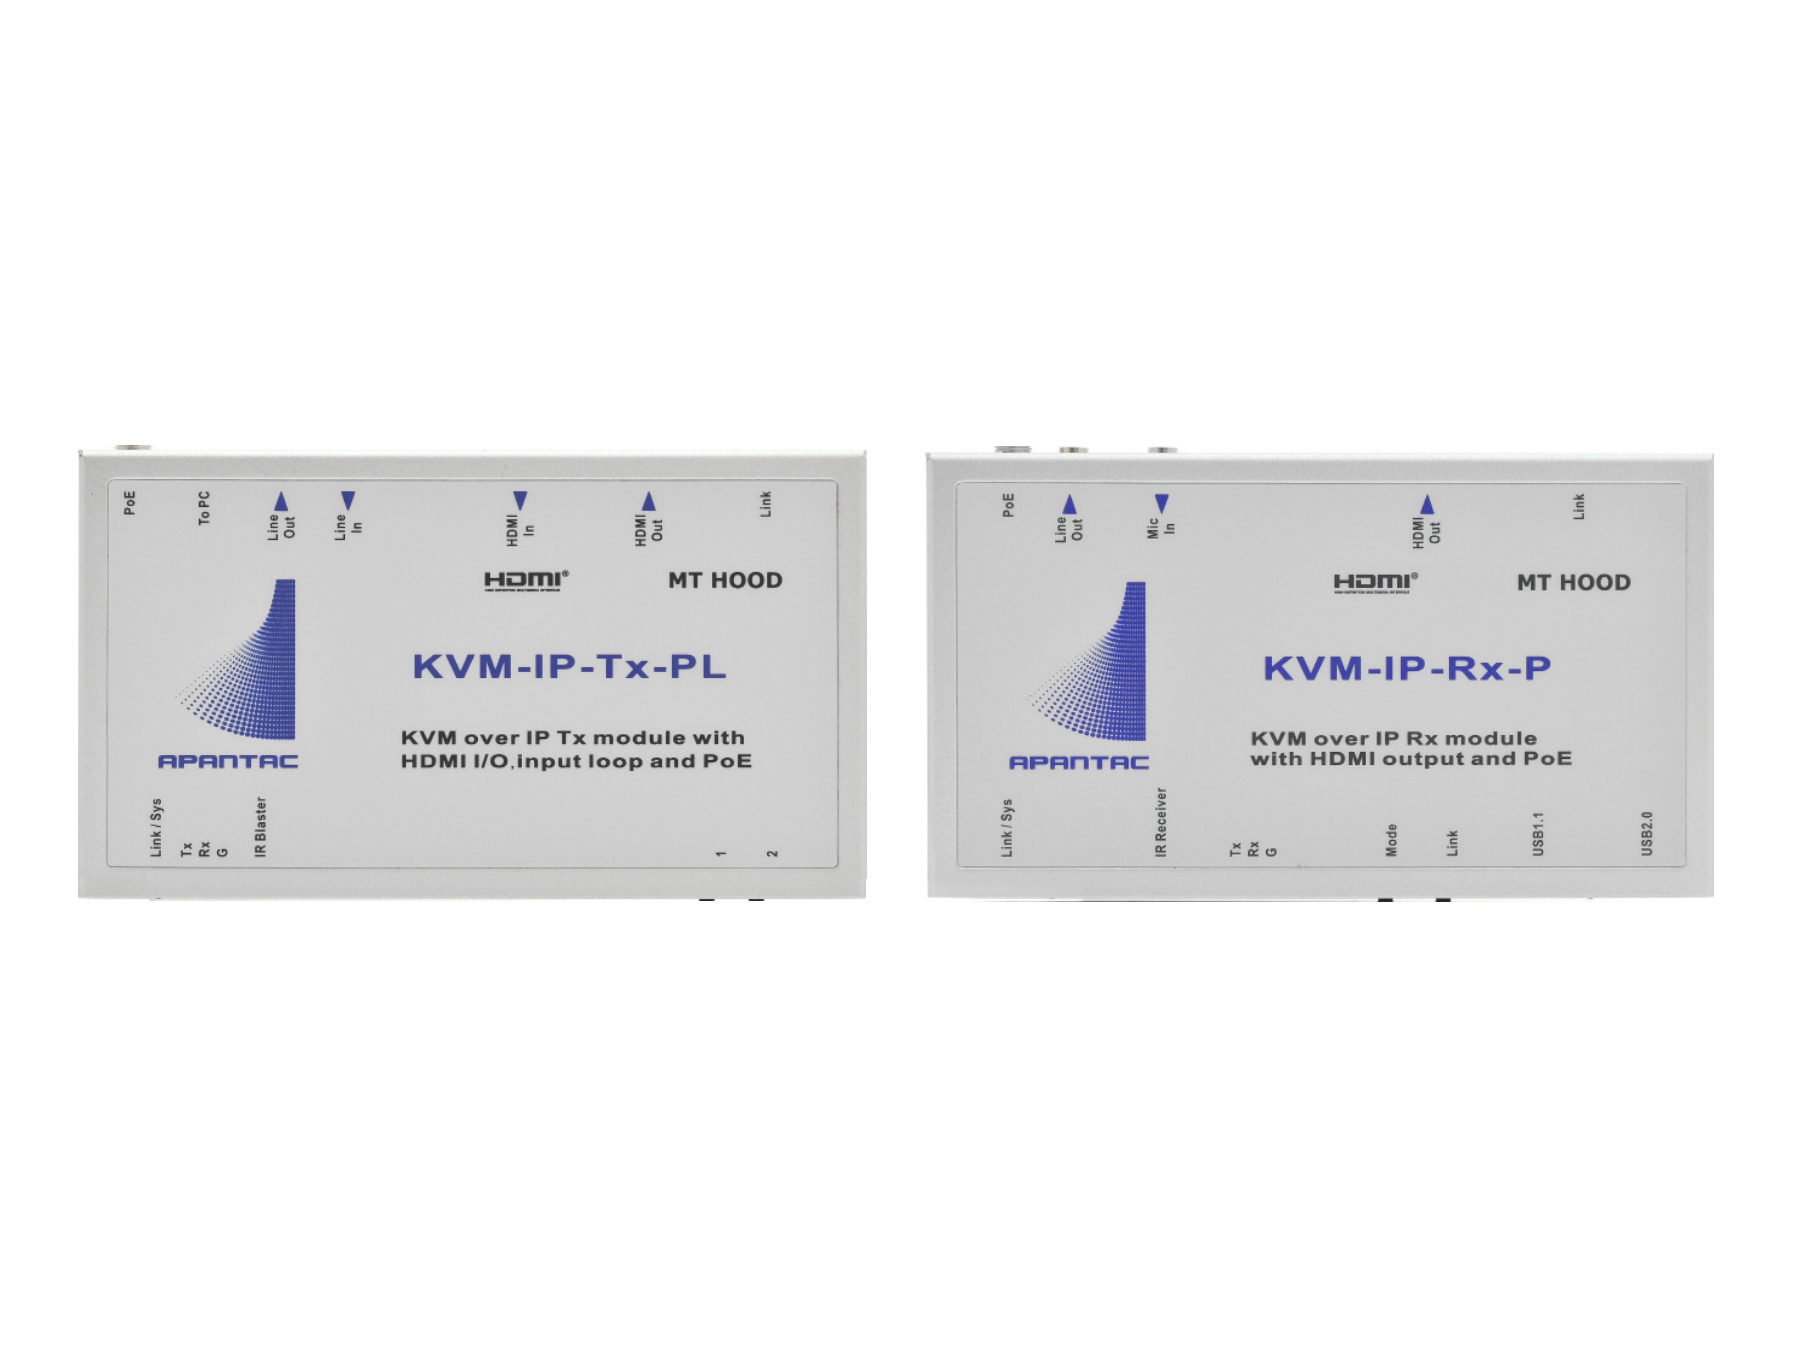 Apantac KVM-SET-14 KVM/HDMI Extender (Transmitter/Receiver) Set over IP with Looping Input and POE